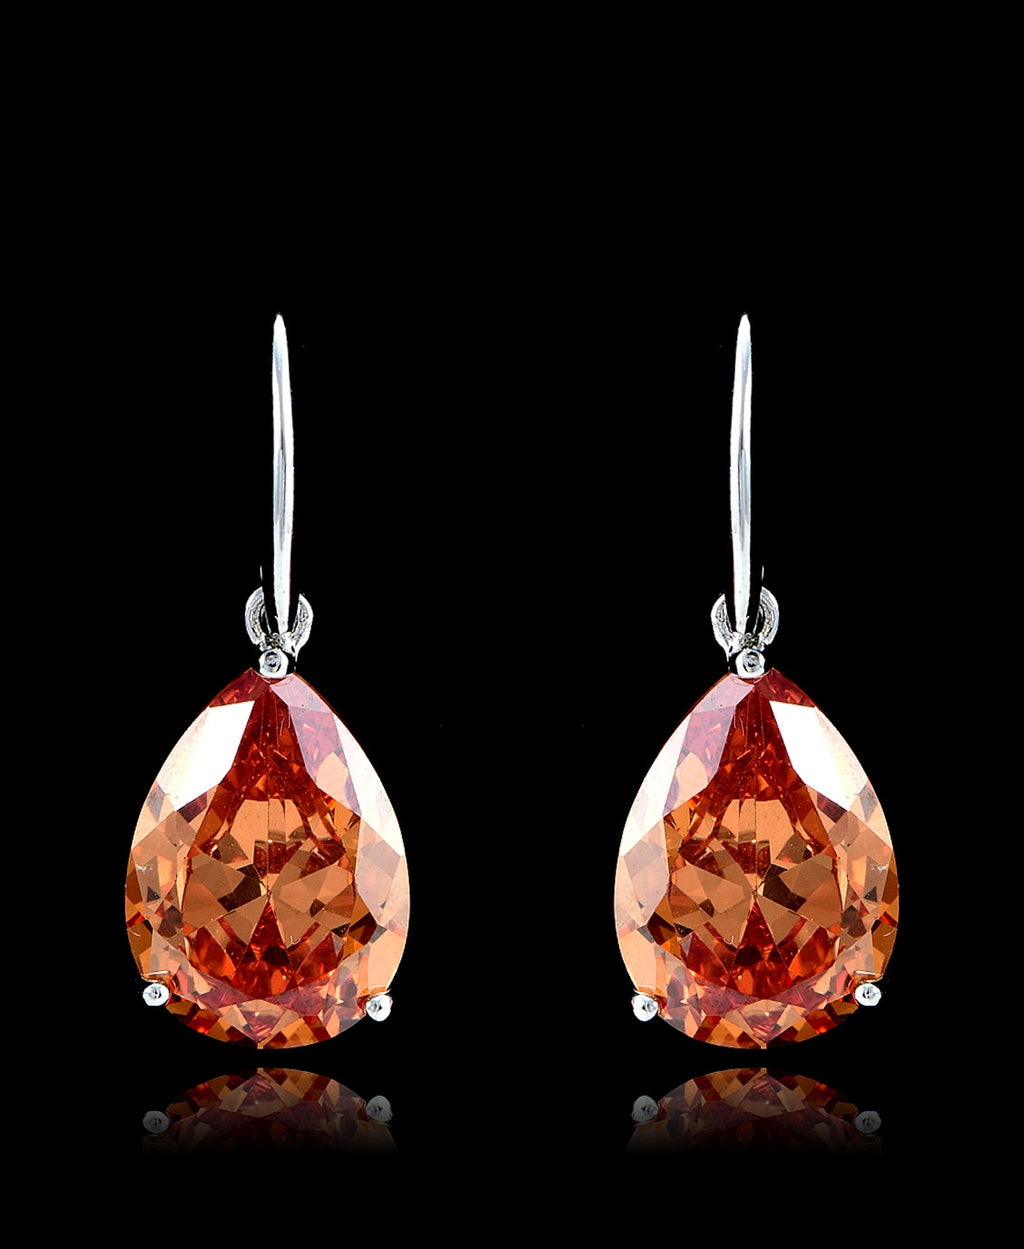 Fire Opal Cubic Zirconia Drop Dangle Earrings - Bedazzled By Jeanelle - 1